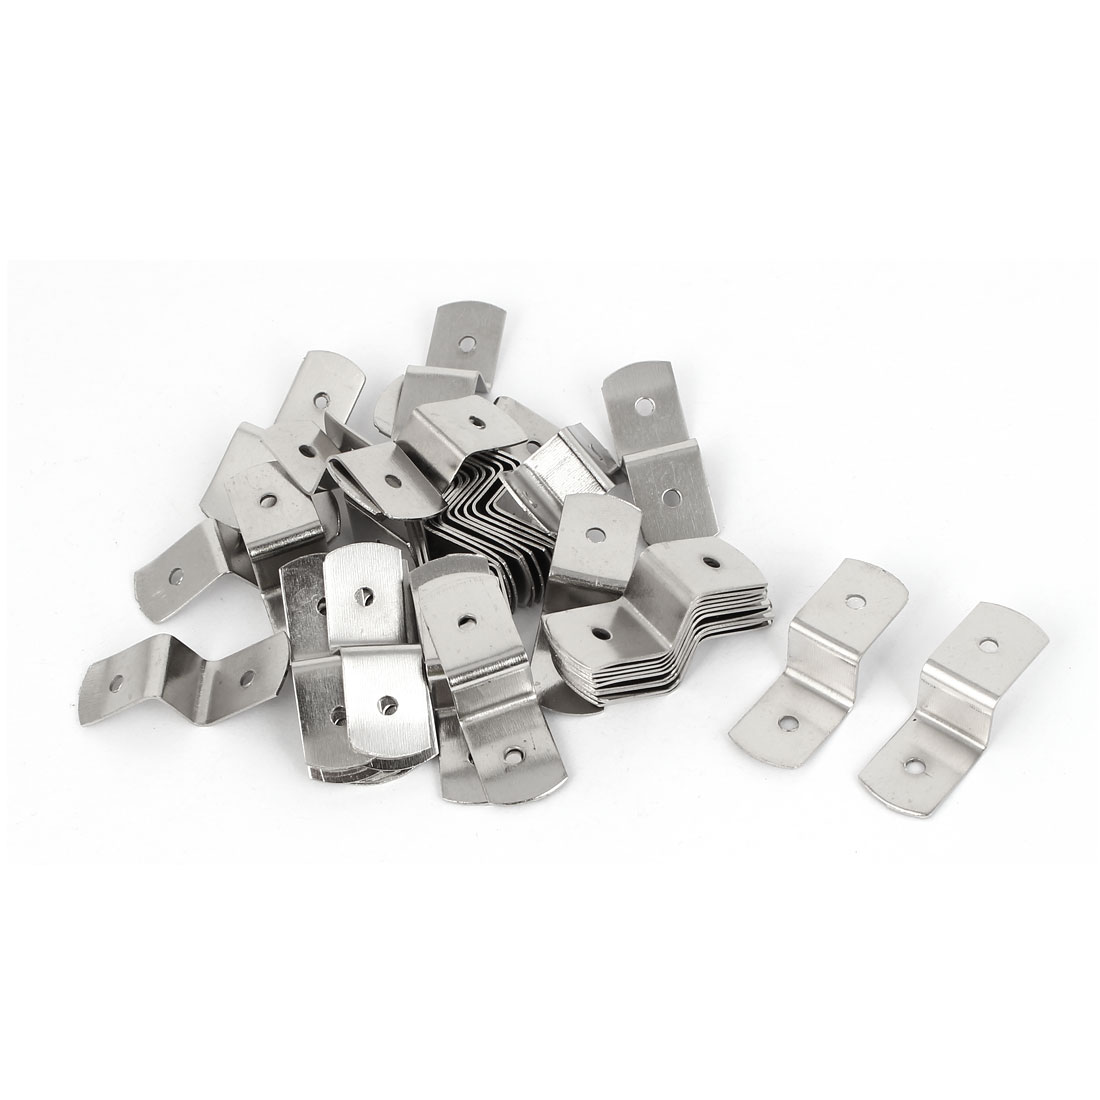 38mm x 13mm x 11mm Metal Z Shape Picture Frame Braces Brackets Silver Tone 50PCS